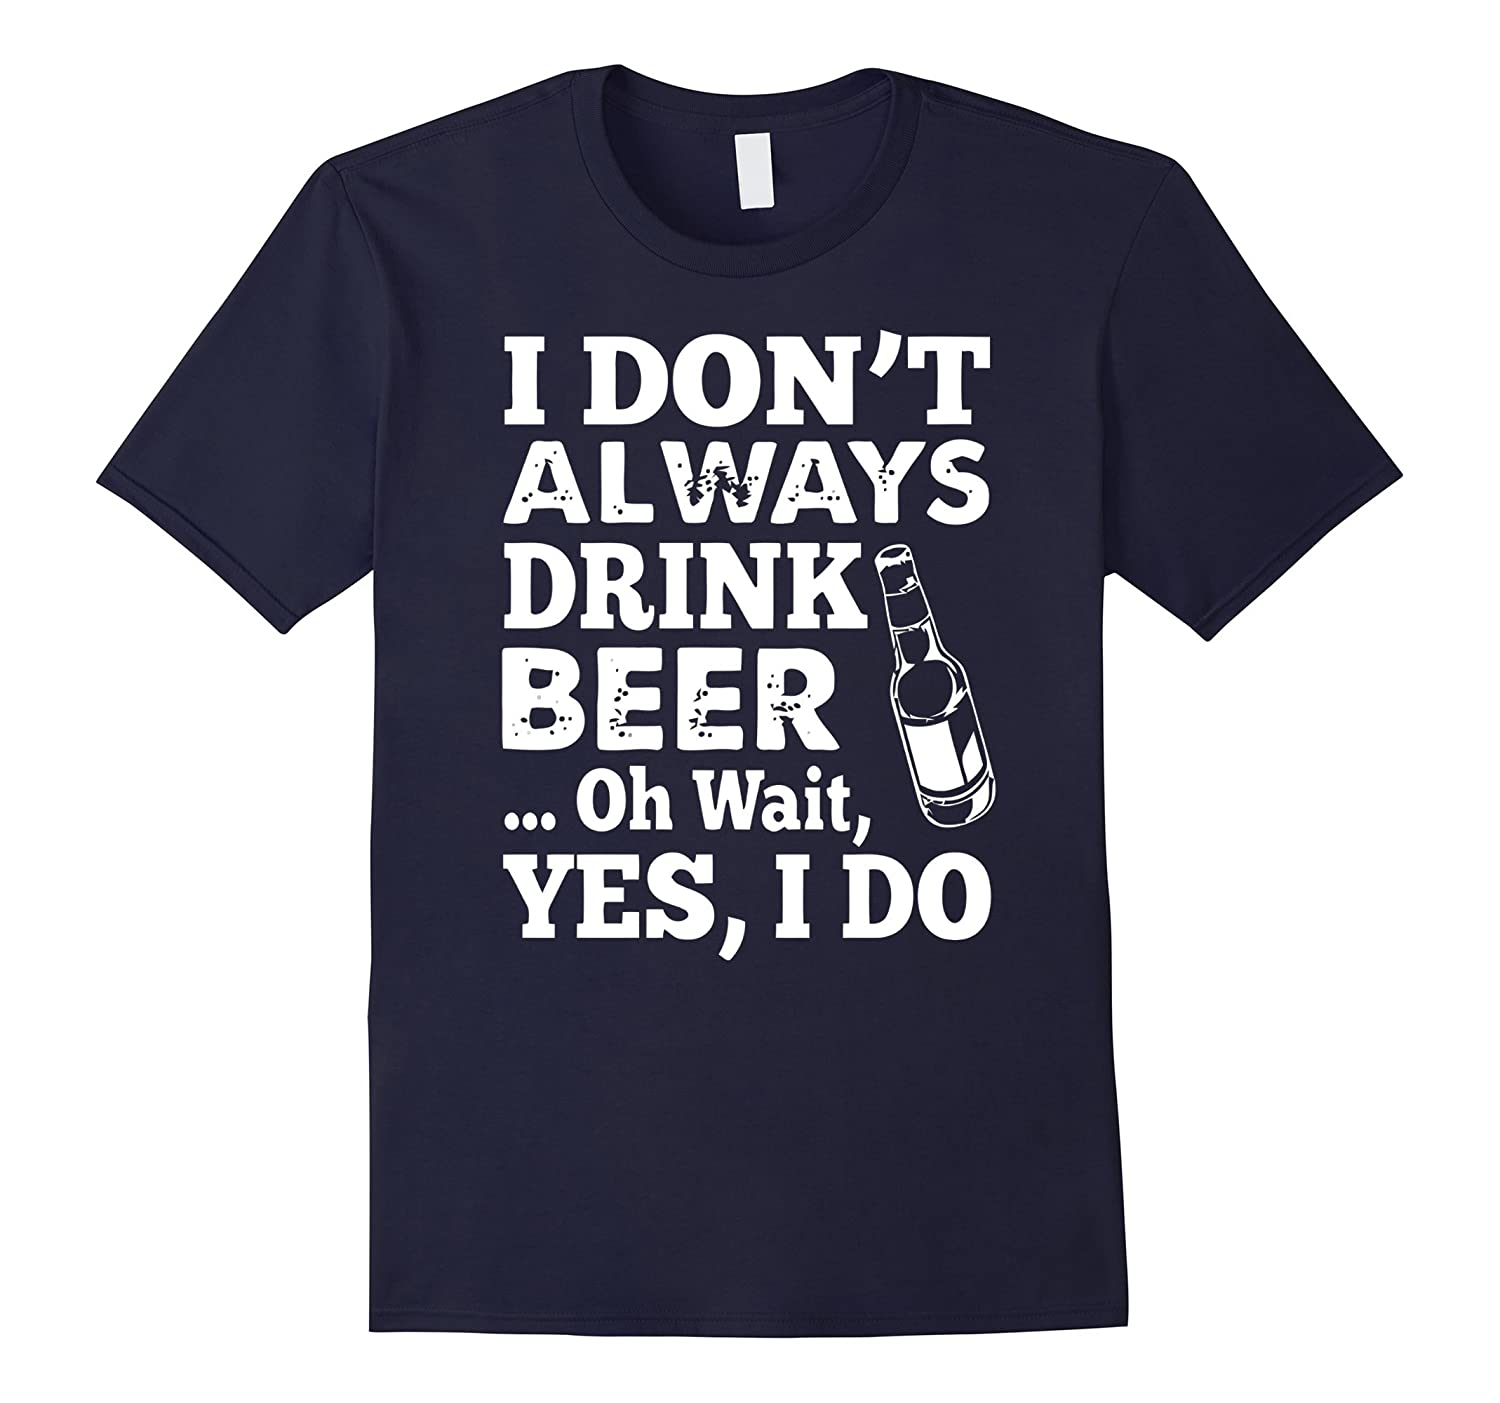 Beer Funny Shirt - I Dont Always Drink Beer Oh Wait Yes I Do-CL